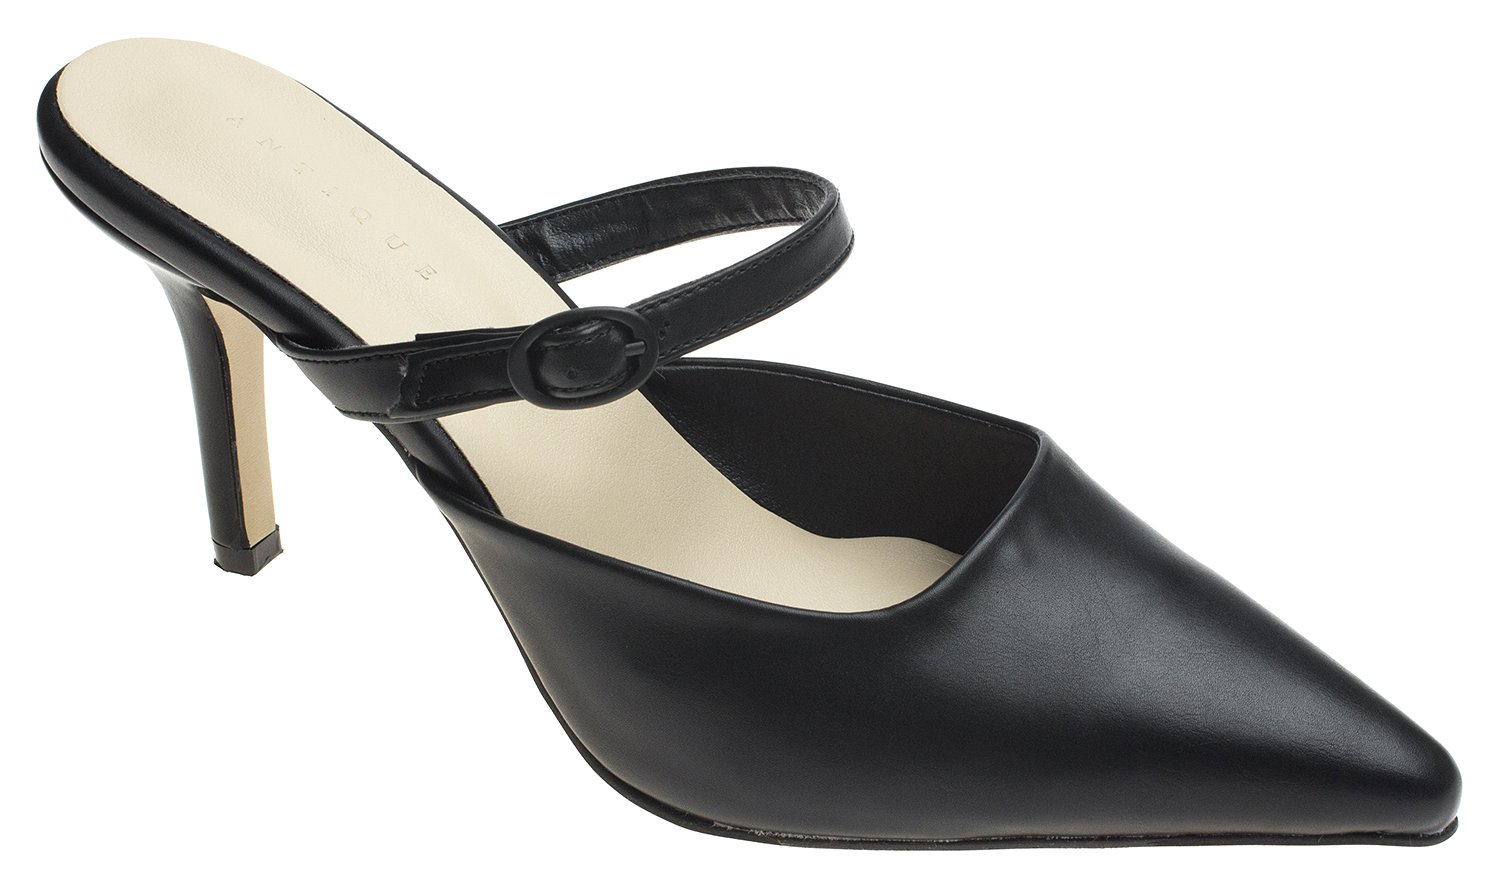 AnnaKastle Womens Pointy Toe Mary Jane Heel Mule B079D5FBC2 7.5 B(M) US|Black